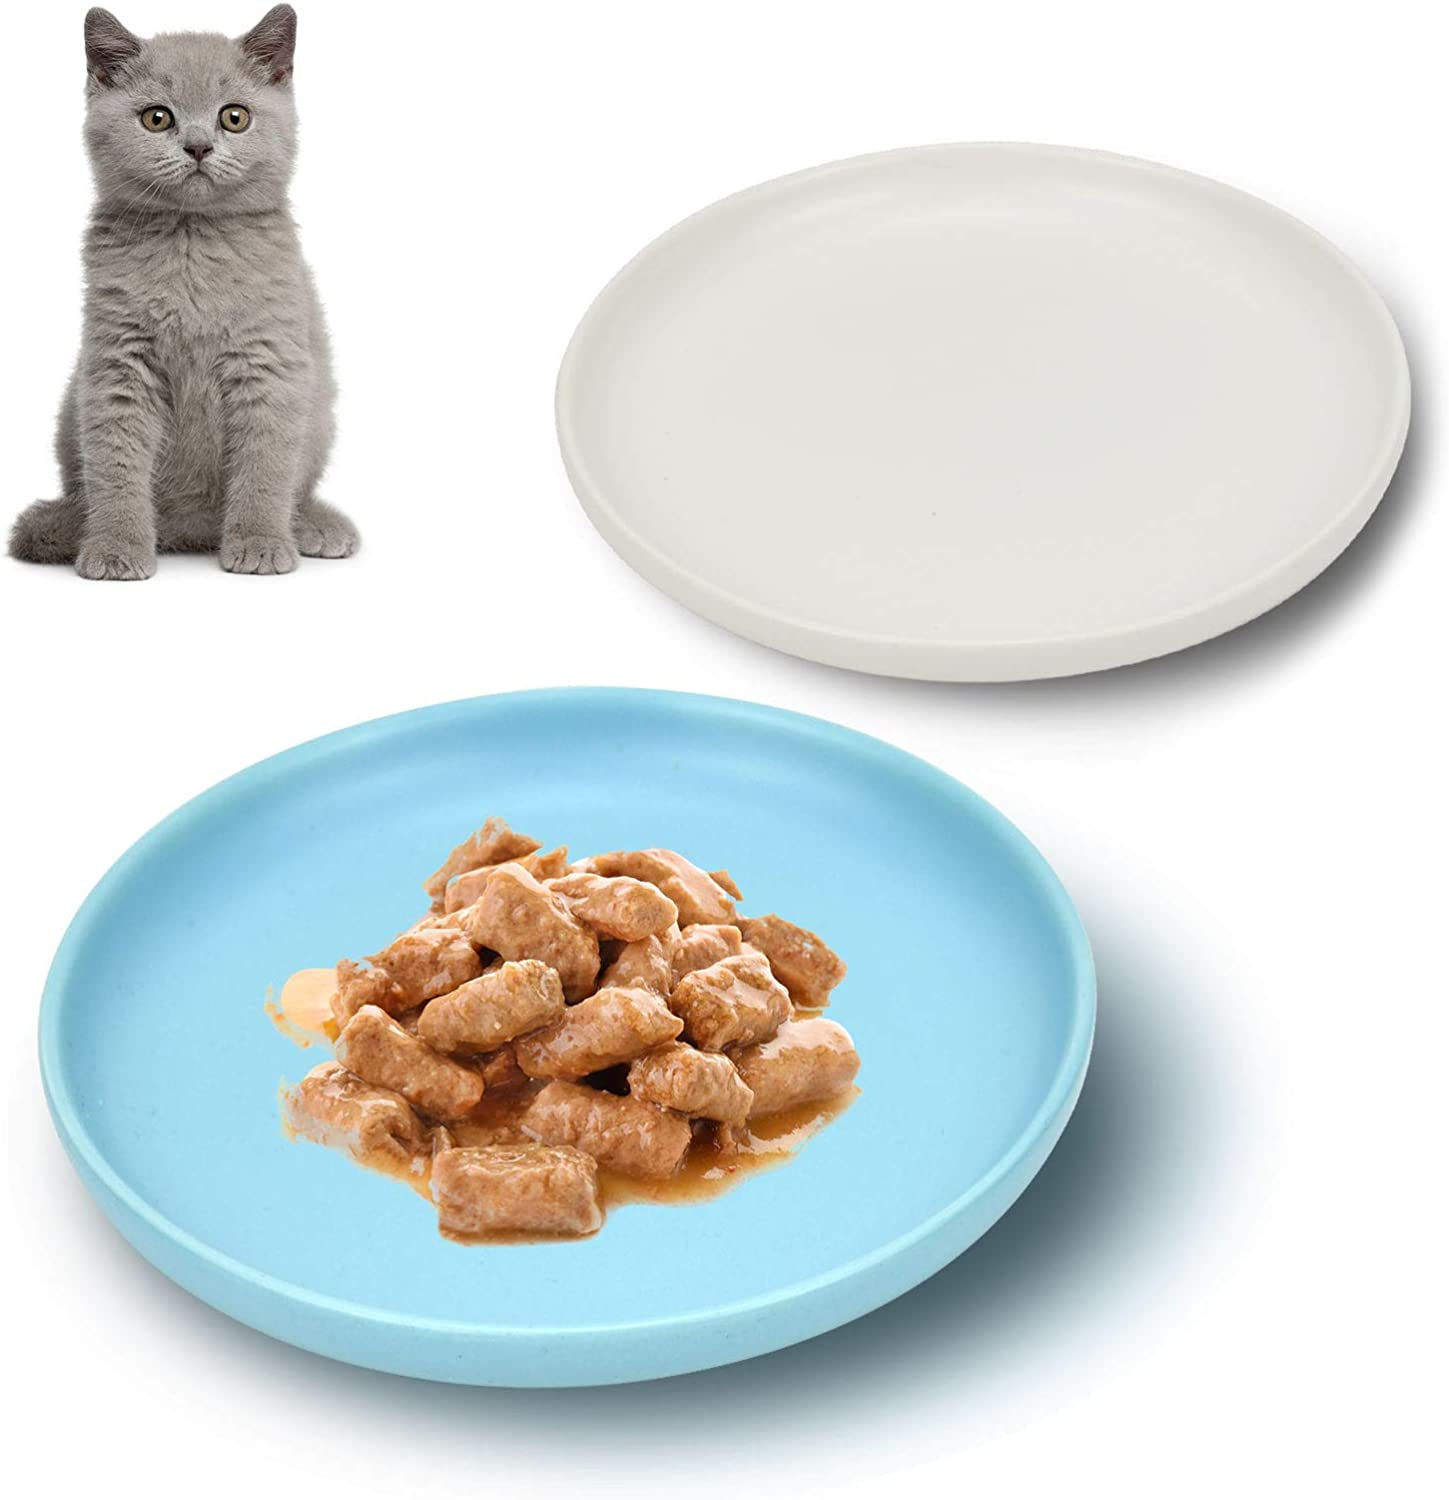 Petdoer Ceramic Cat Dishes, Whisker Fatigue Free Cat Food Bowl, Wide and Shallow Non Slip Pet Plate for Cat, Kitten, Short Legged Munchkin Cat (2 Pack - White & Blue)